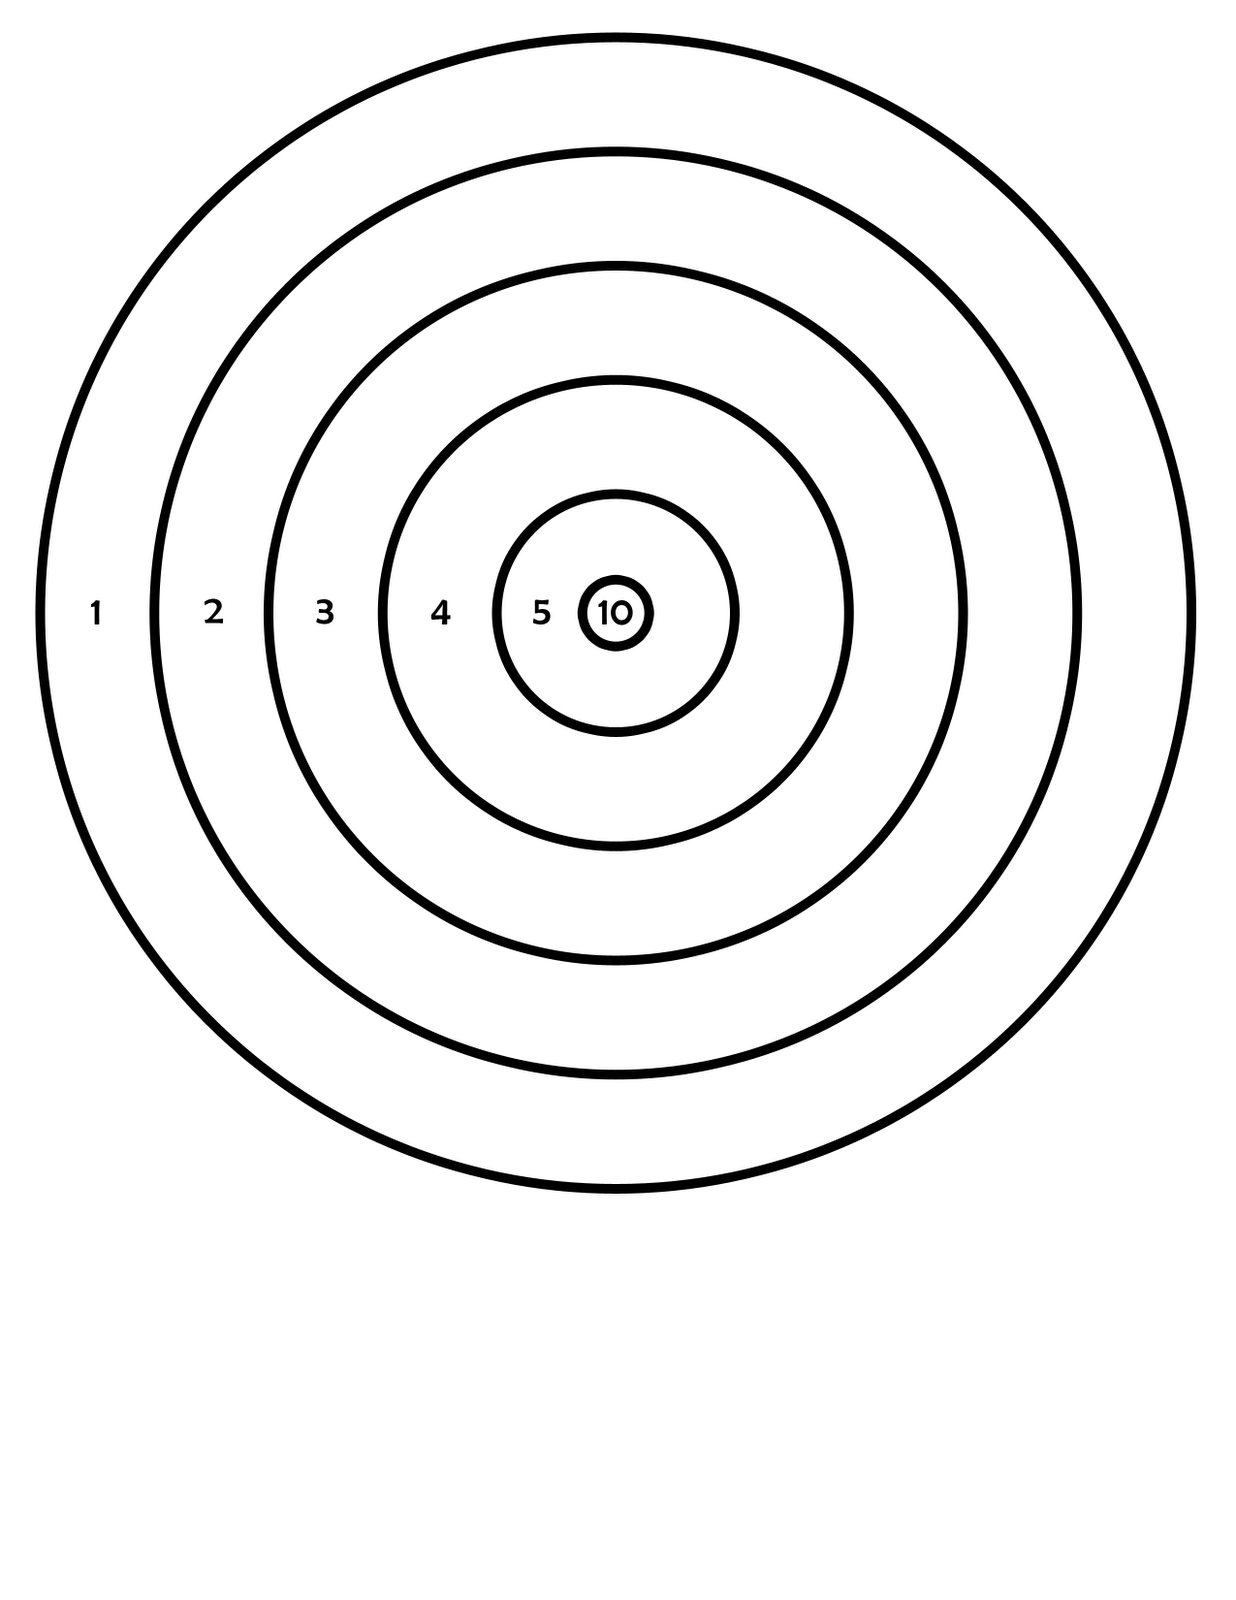 picture relating to Printable Dry Fire Targets called Printable Goals 411Toys: Free of charge PRINTABLE AIRSOFT Ambitions